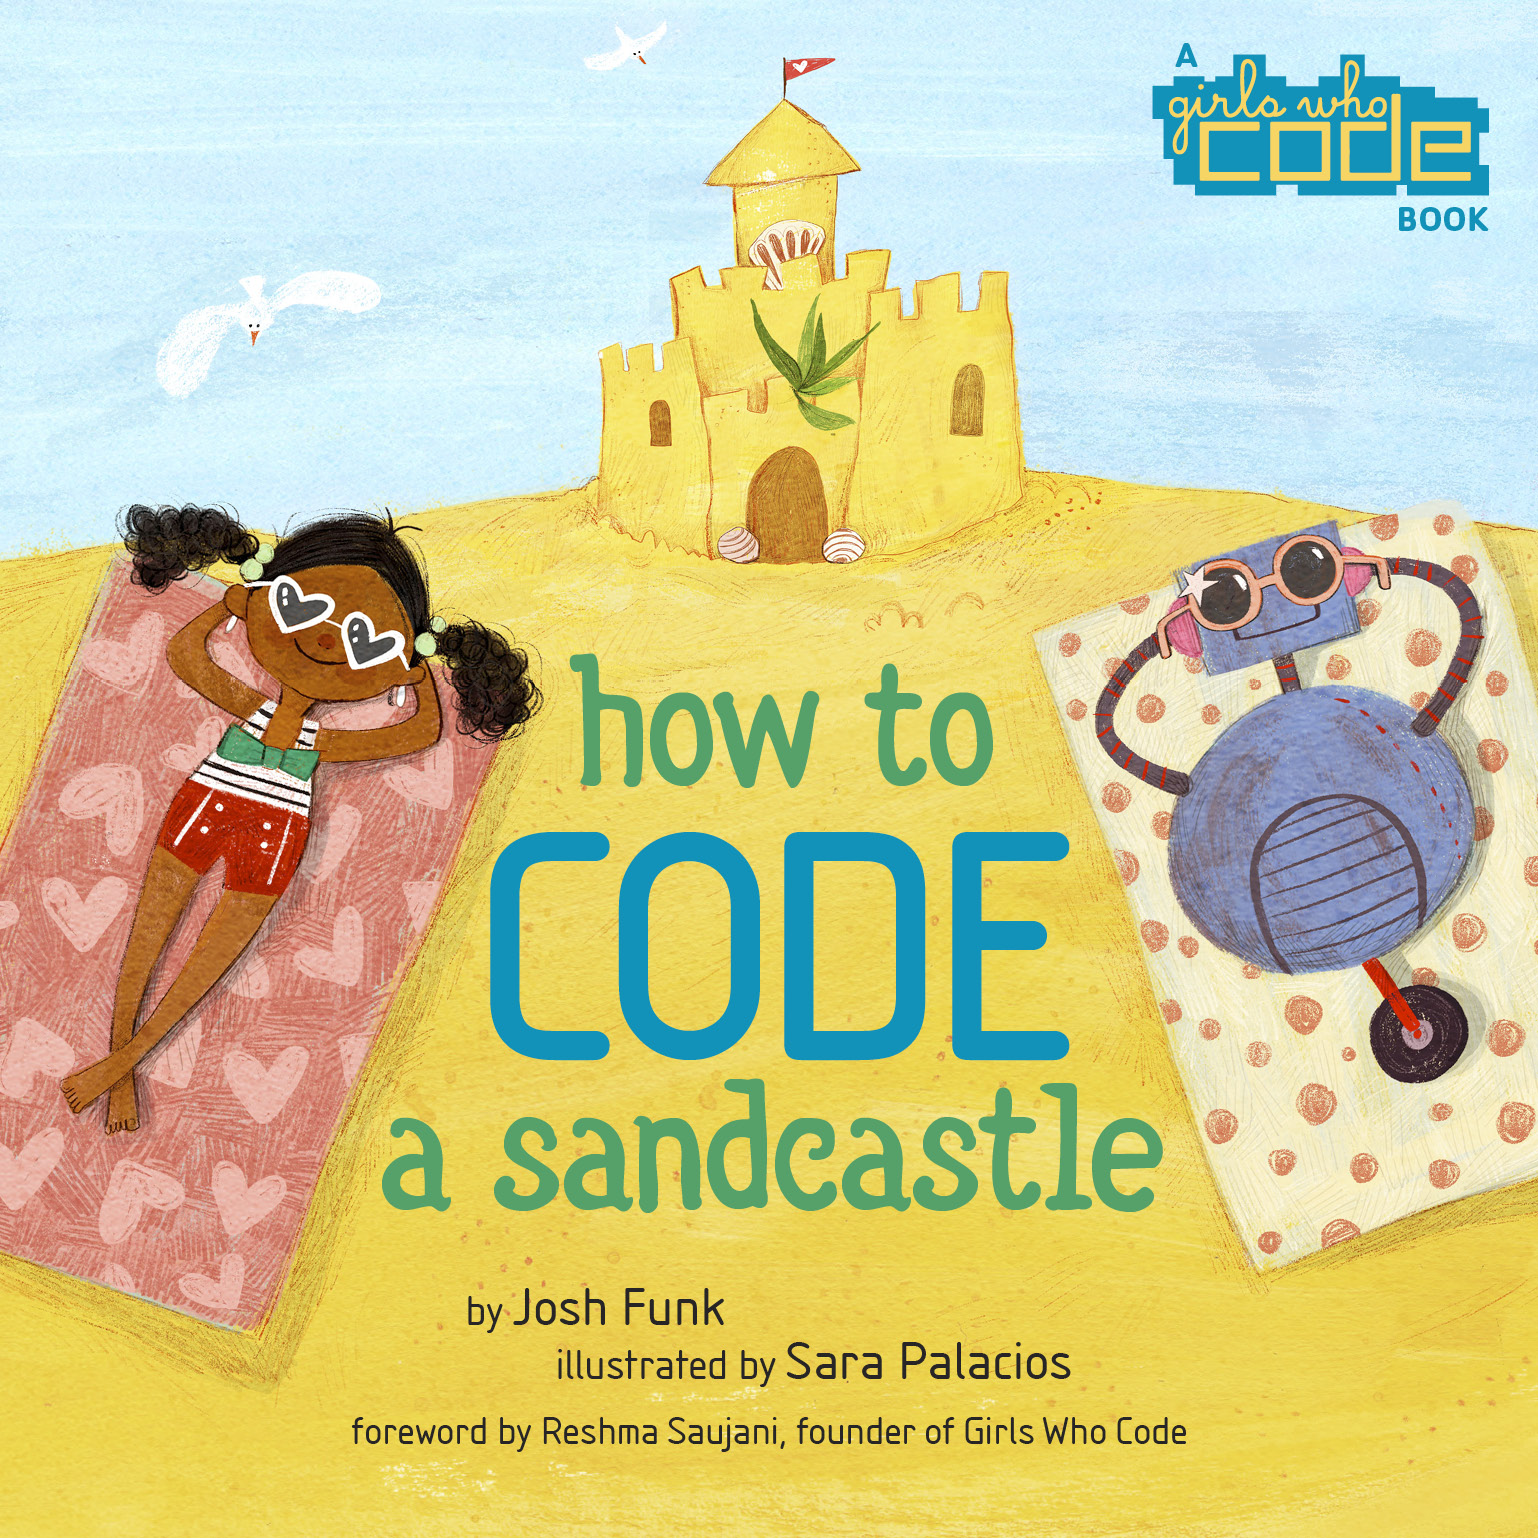 HowToCodeASandcastle_coverreveal_rev.jpg